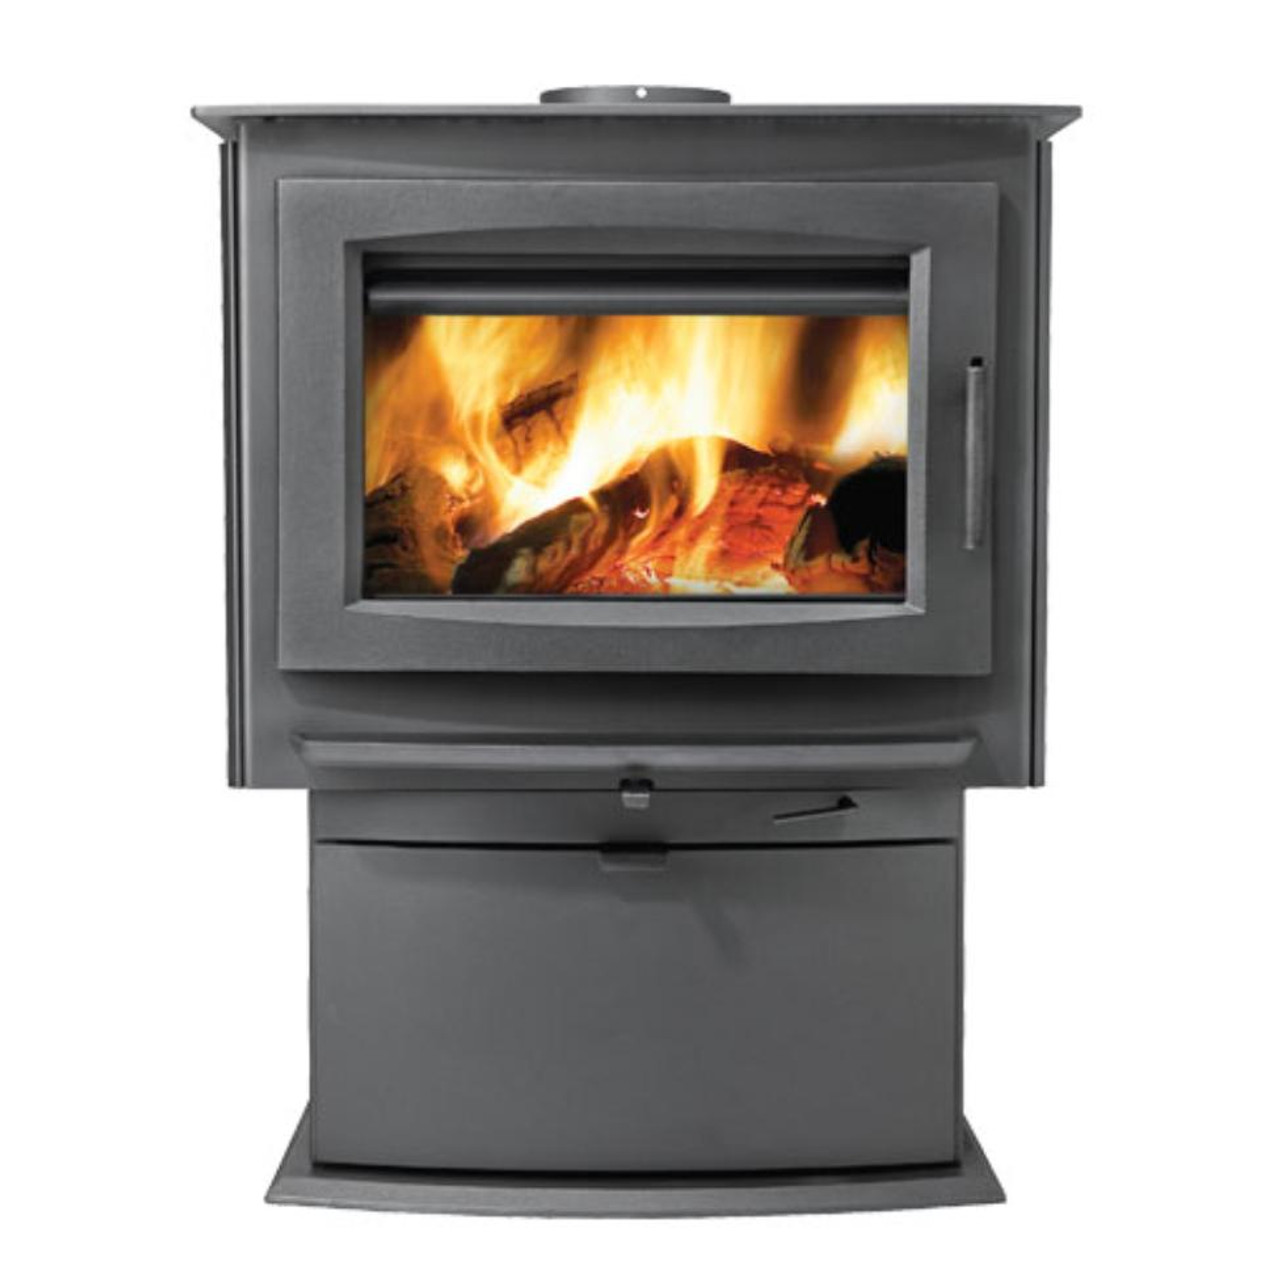 Wood Fireplace Inserts Today Burning Pics Kits Reviews Prices Yebuzz Napoleon S4 Wood Stove